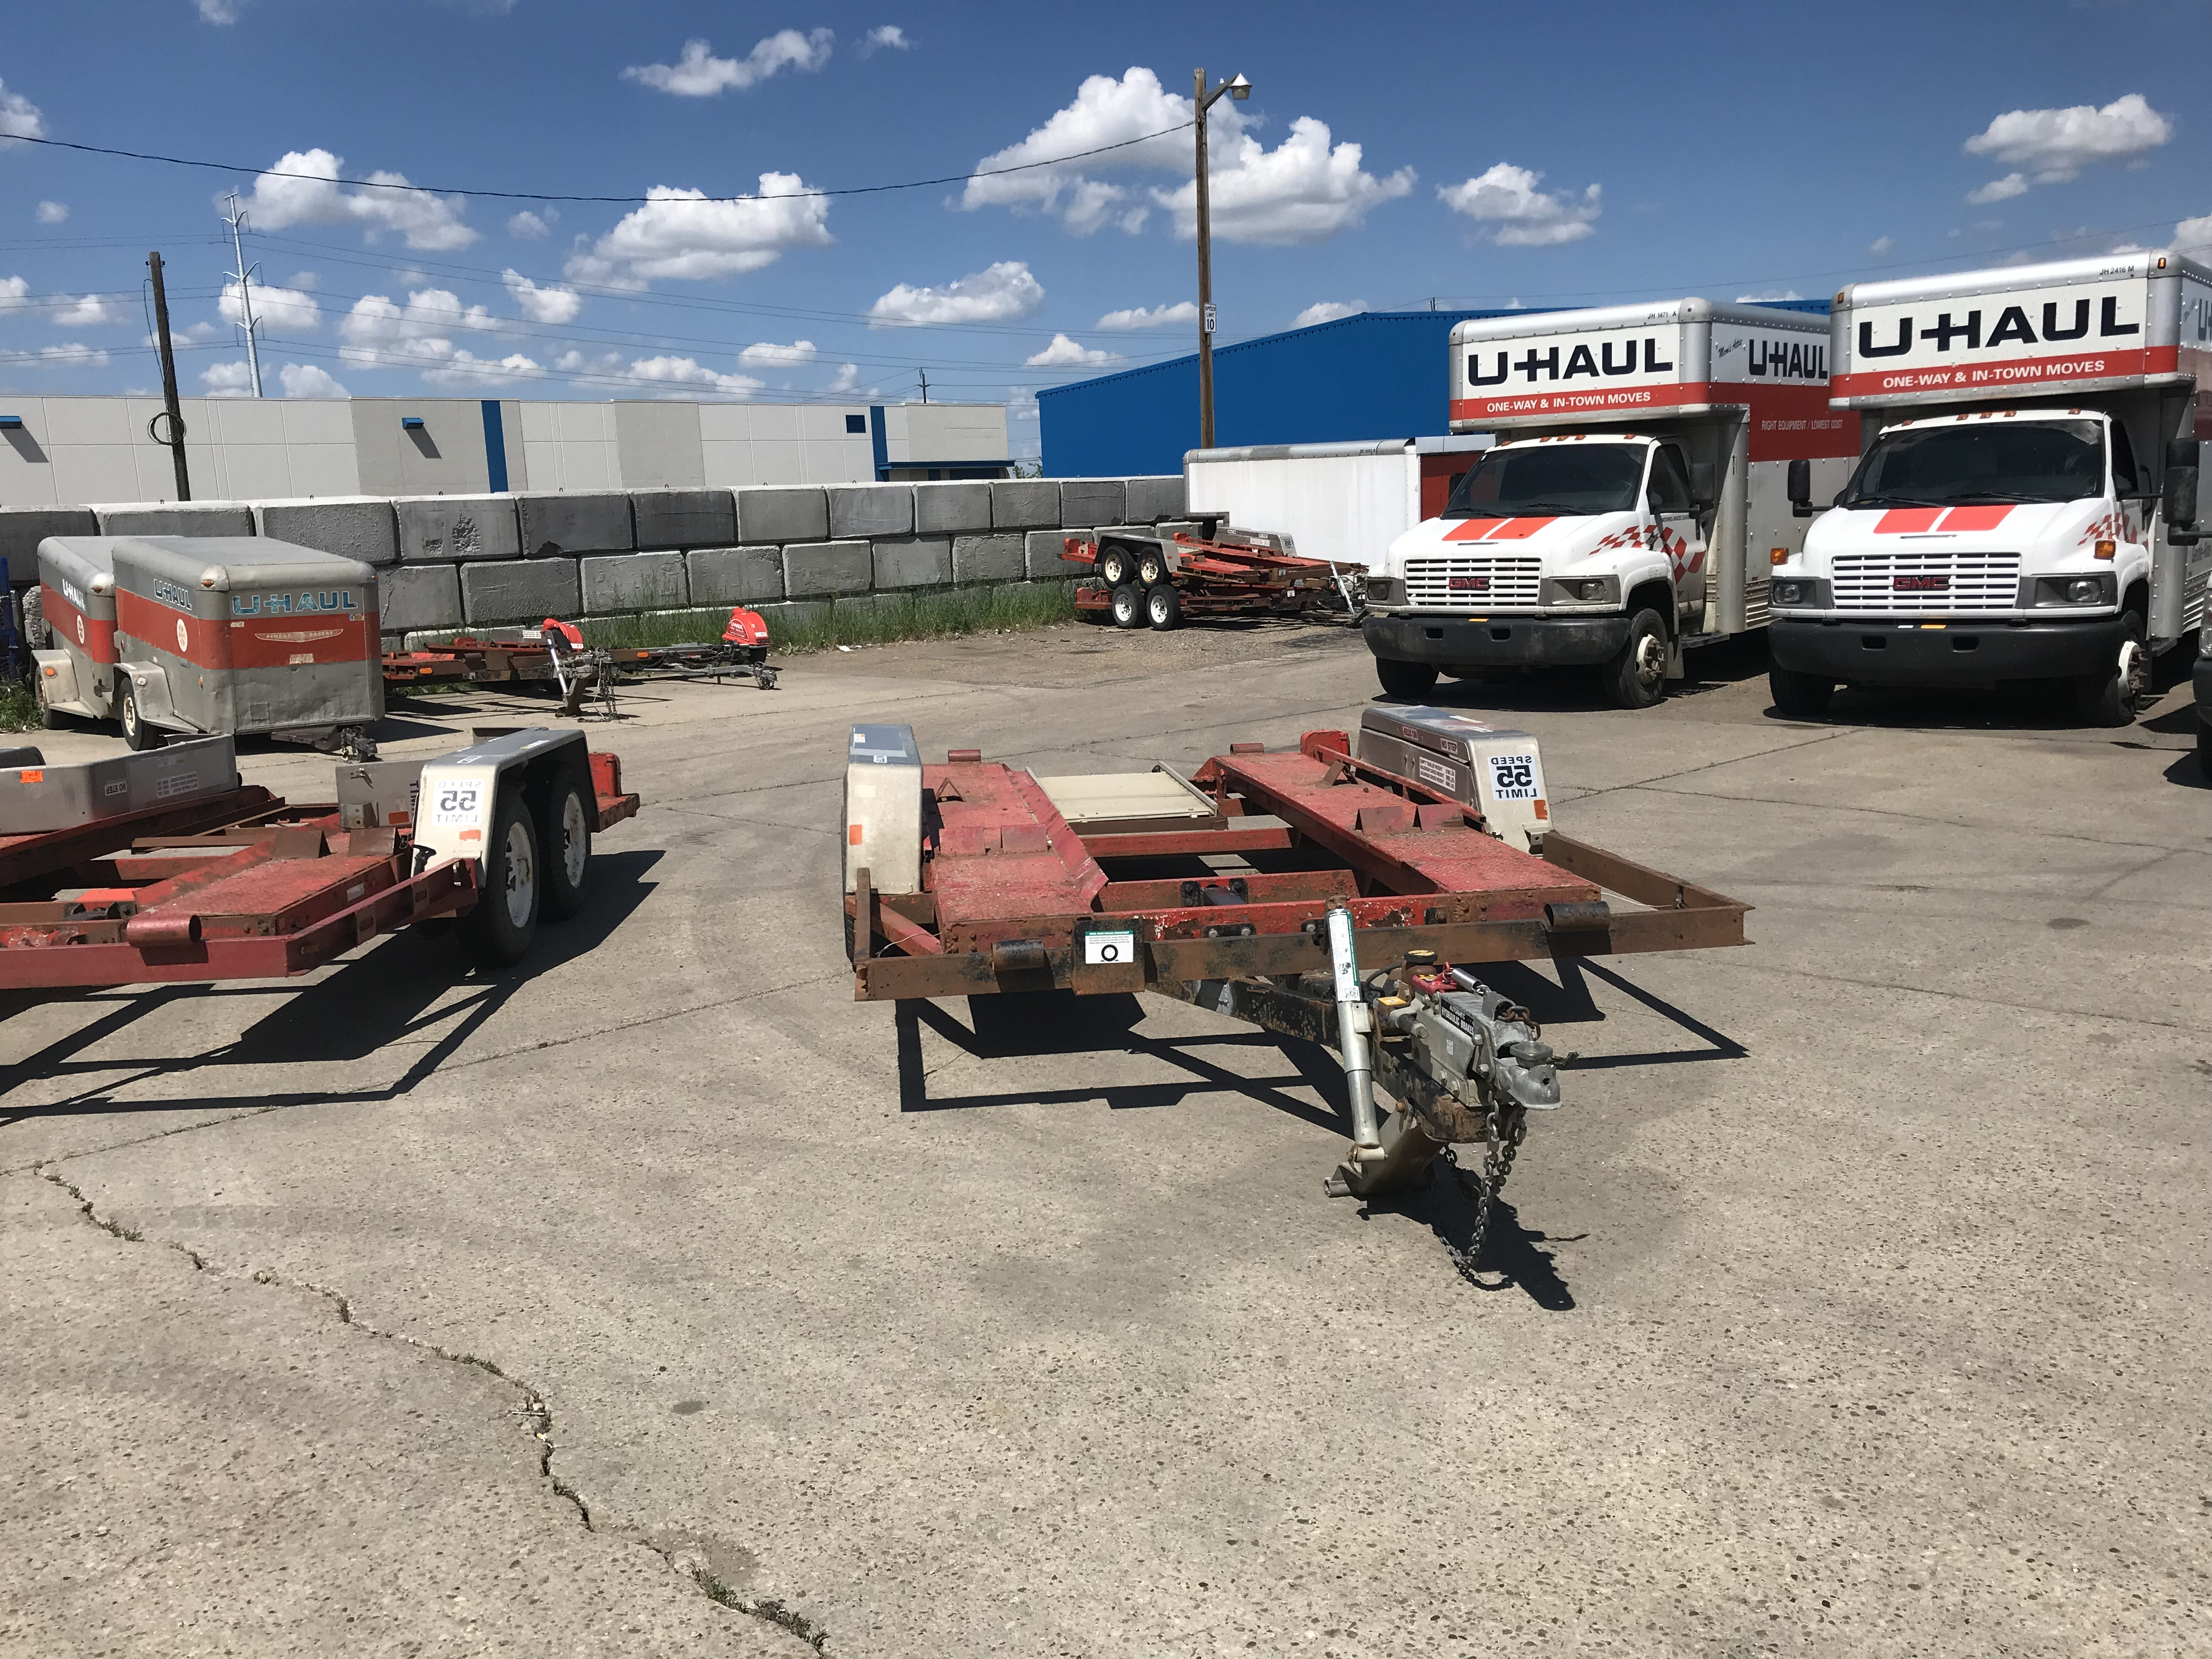 Used 1992 Utility Trailer for sale